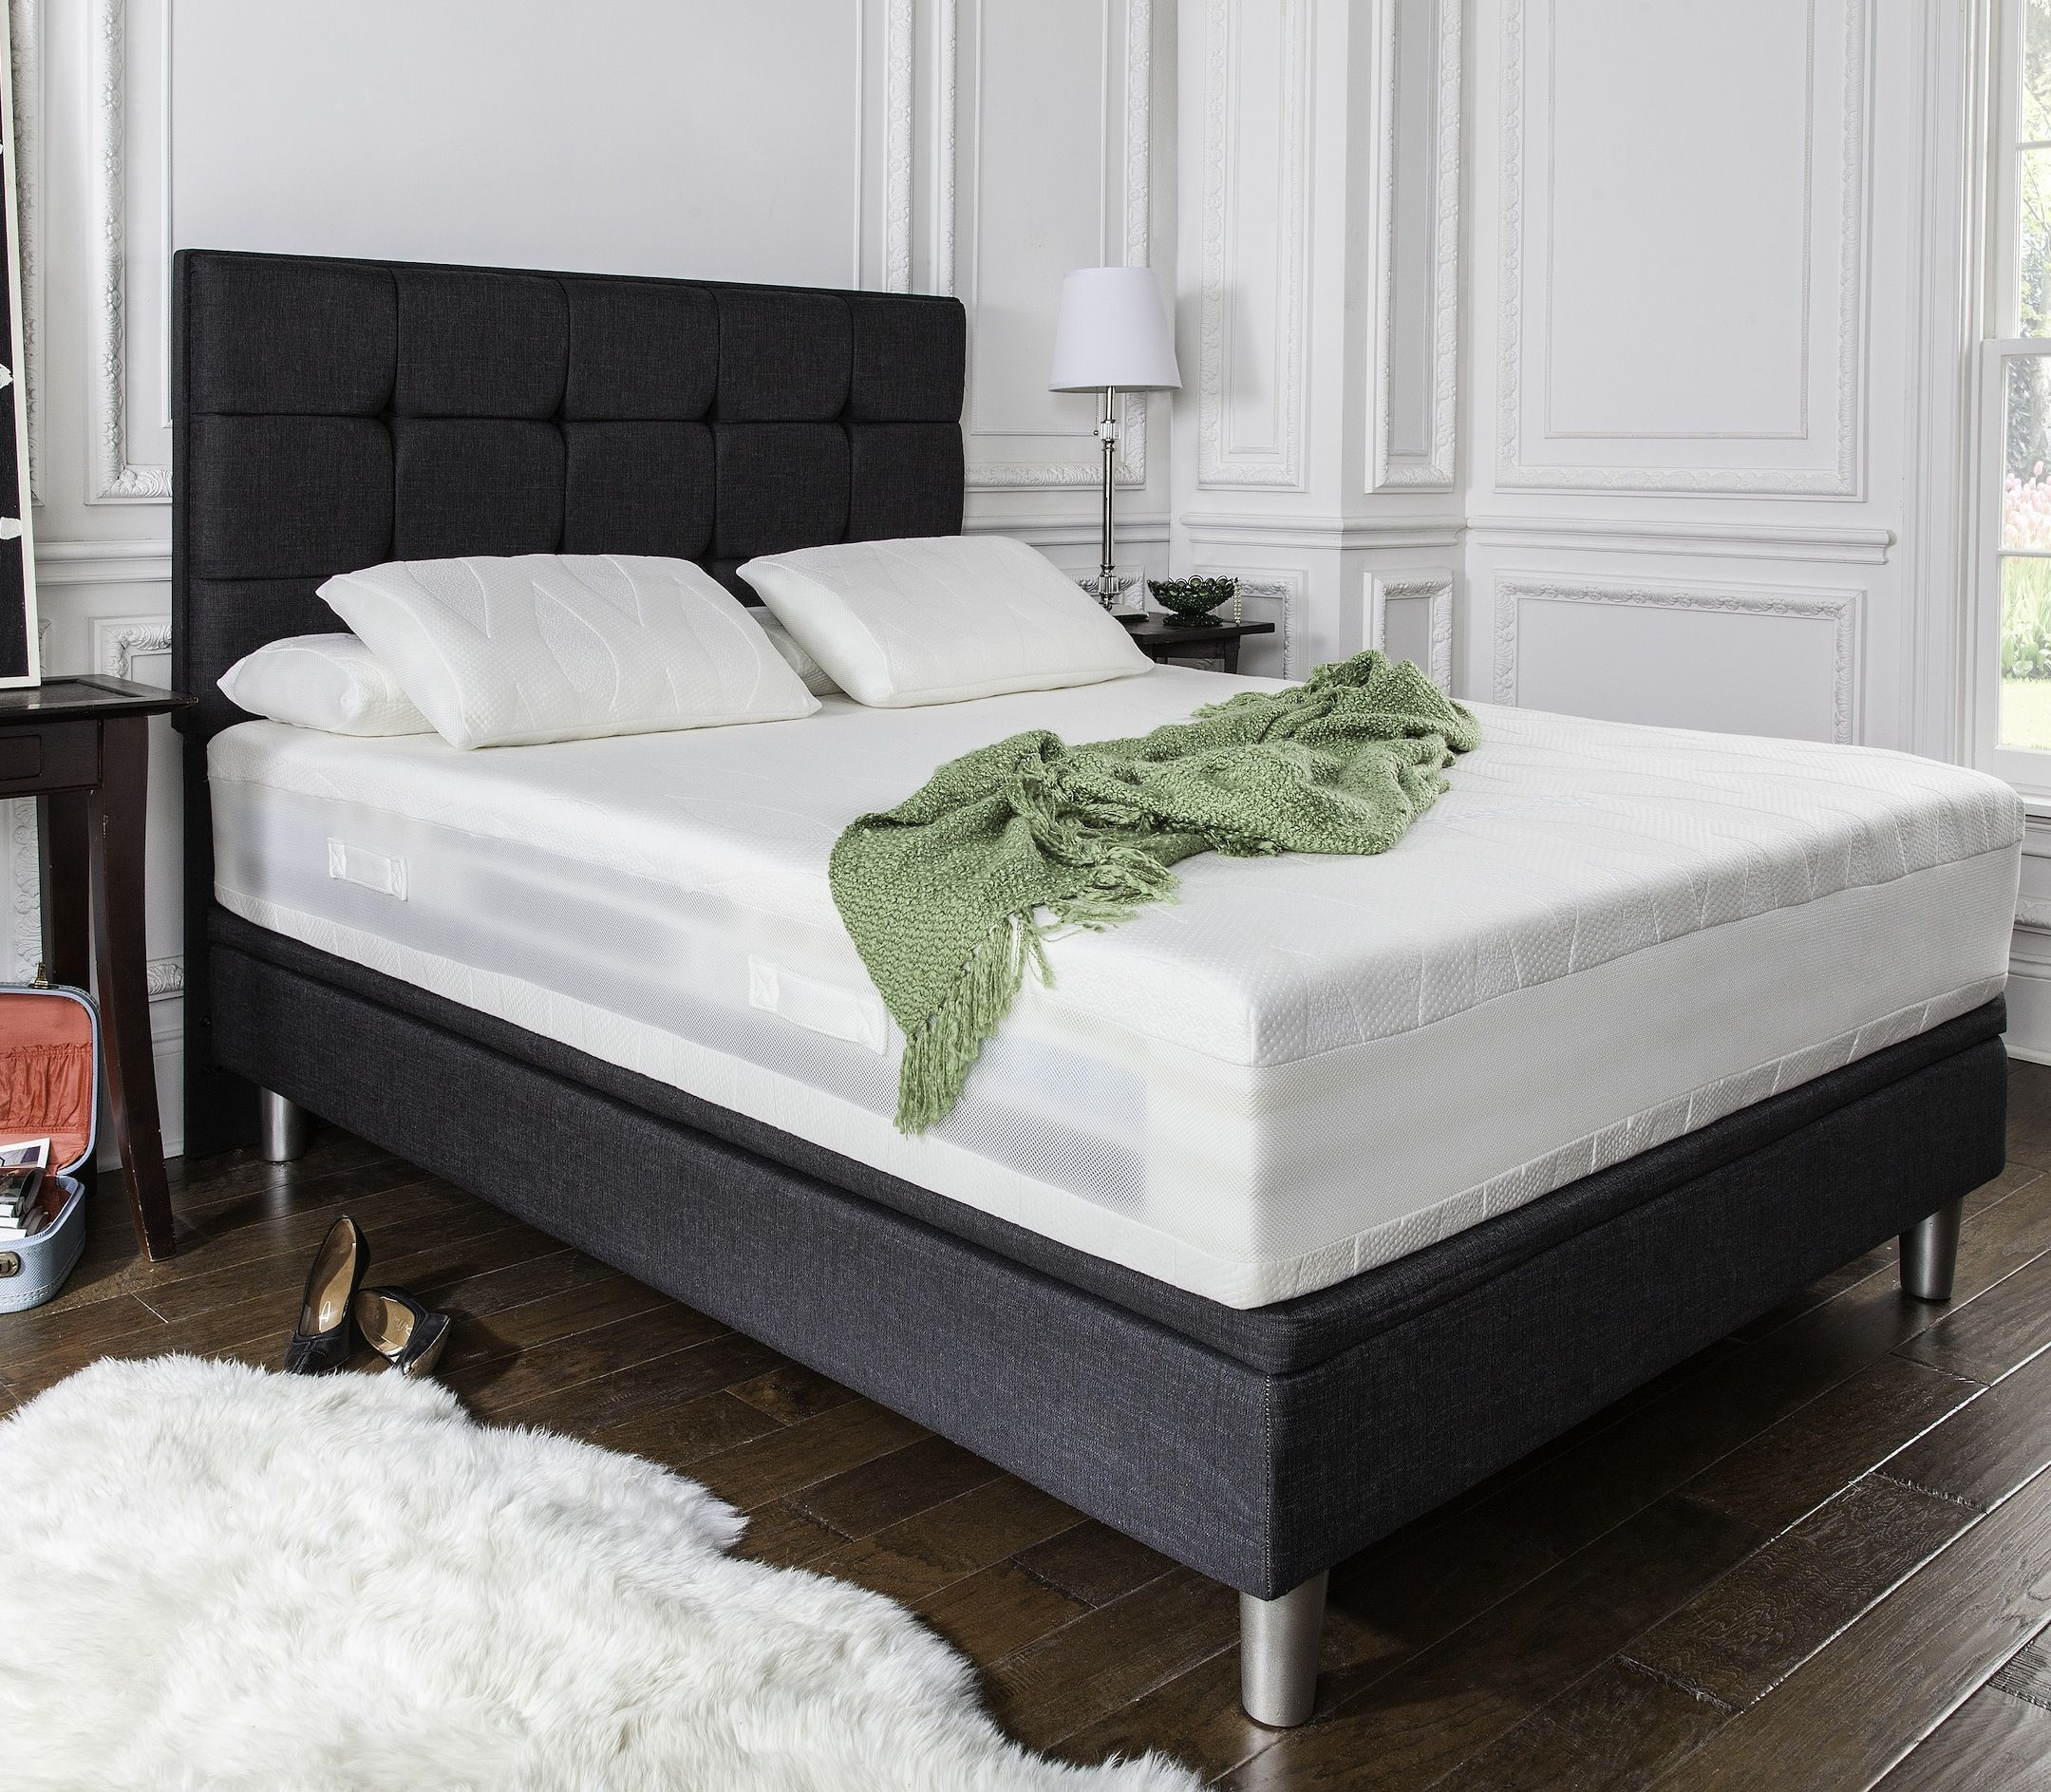 the new 9500 has octaspring memory foam and this revolutionary